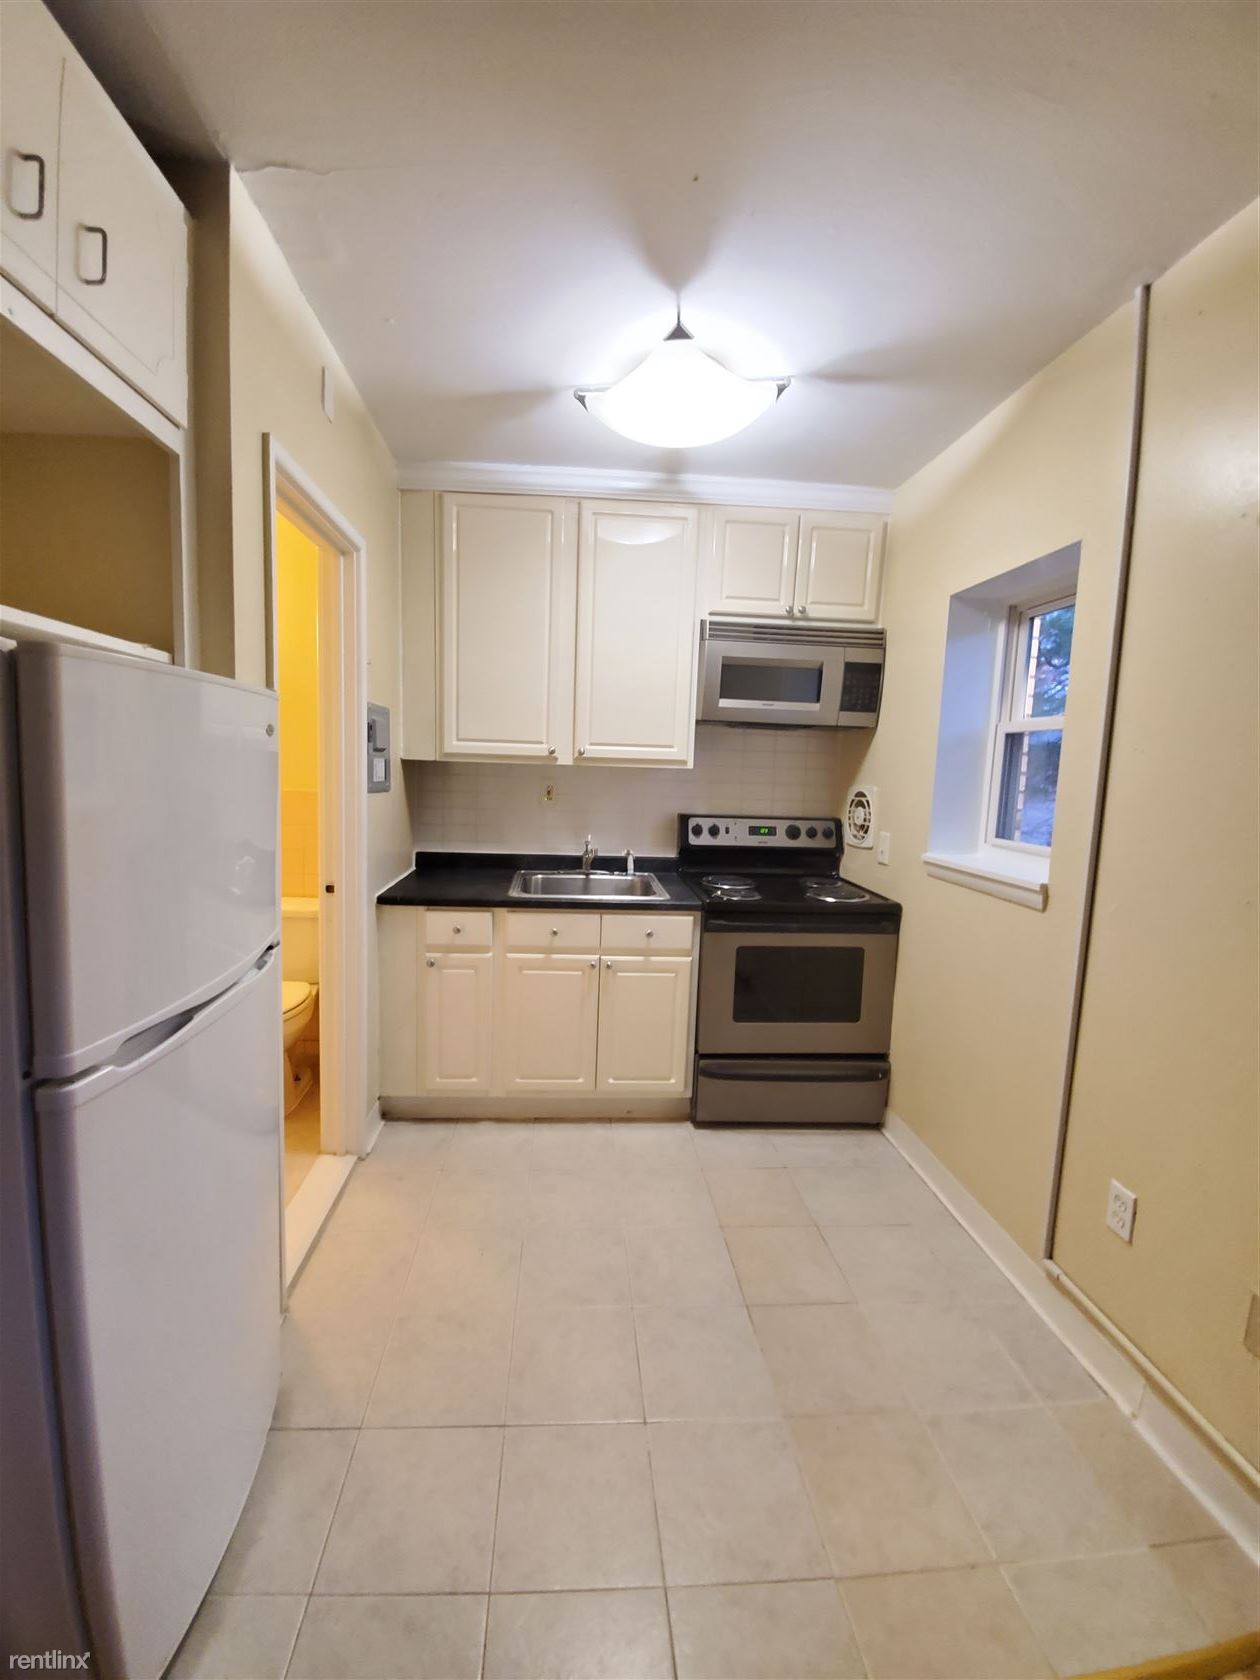 154 Fountain St, New Haven, CT - $800